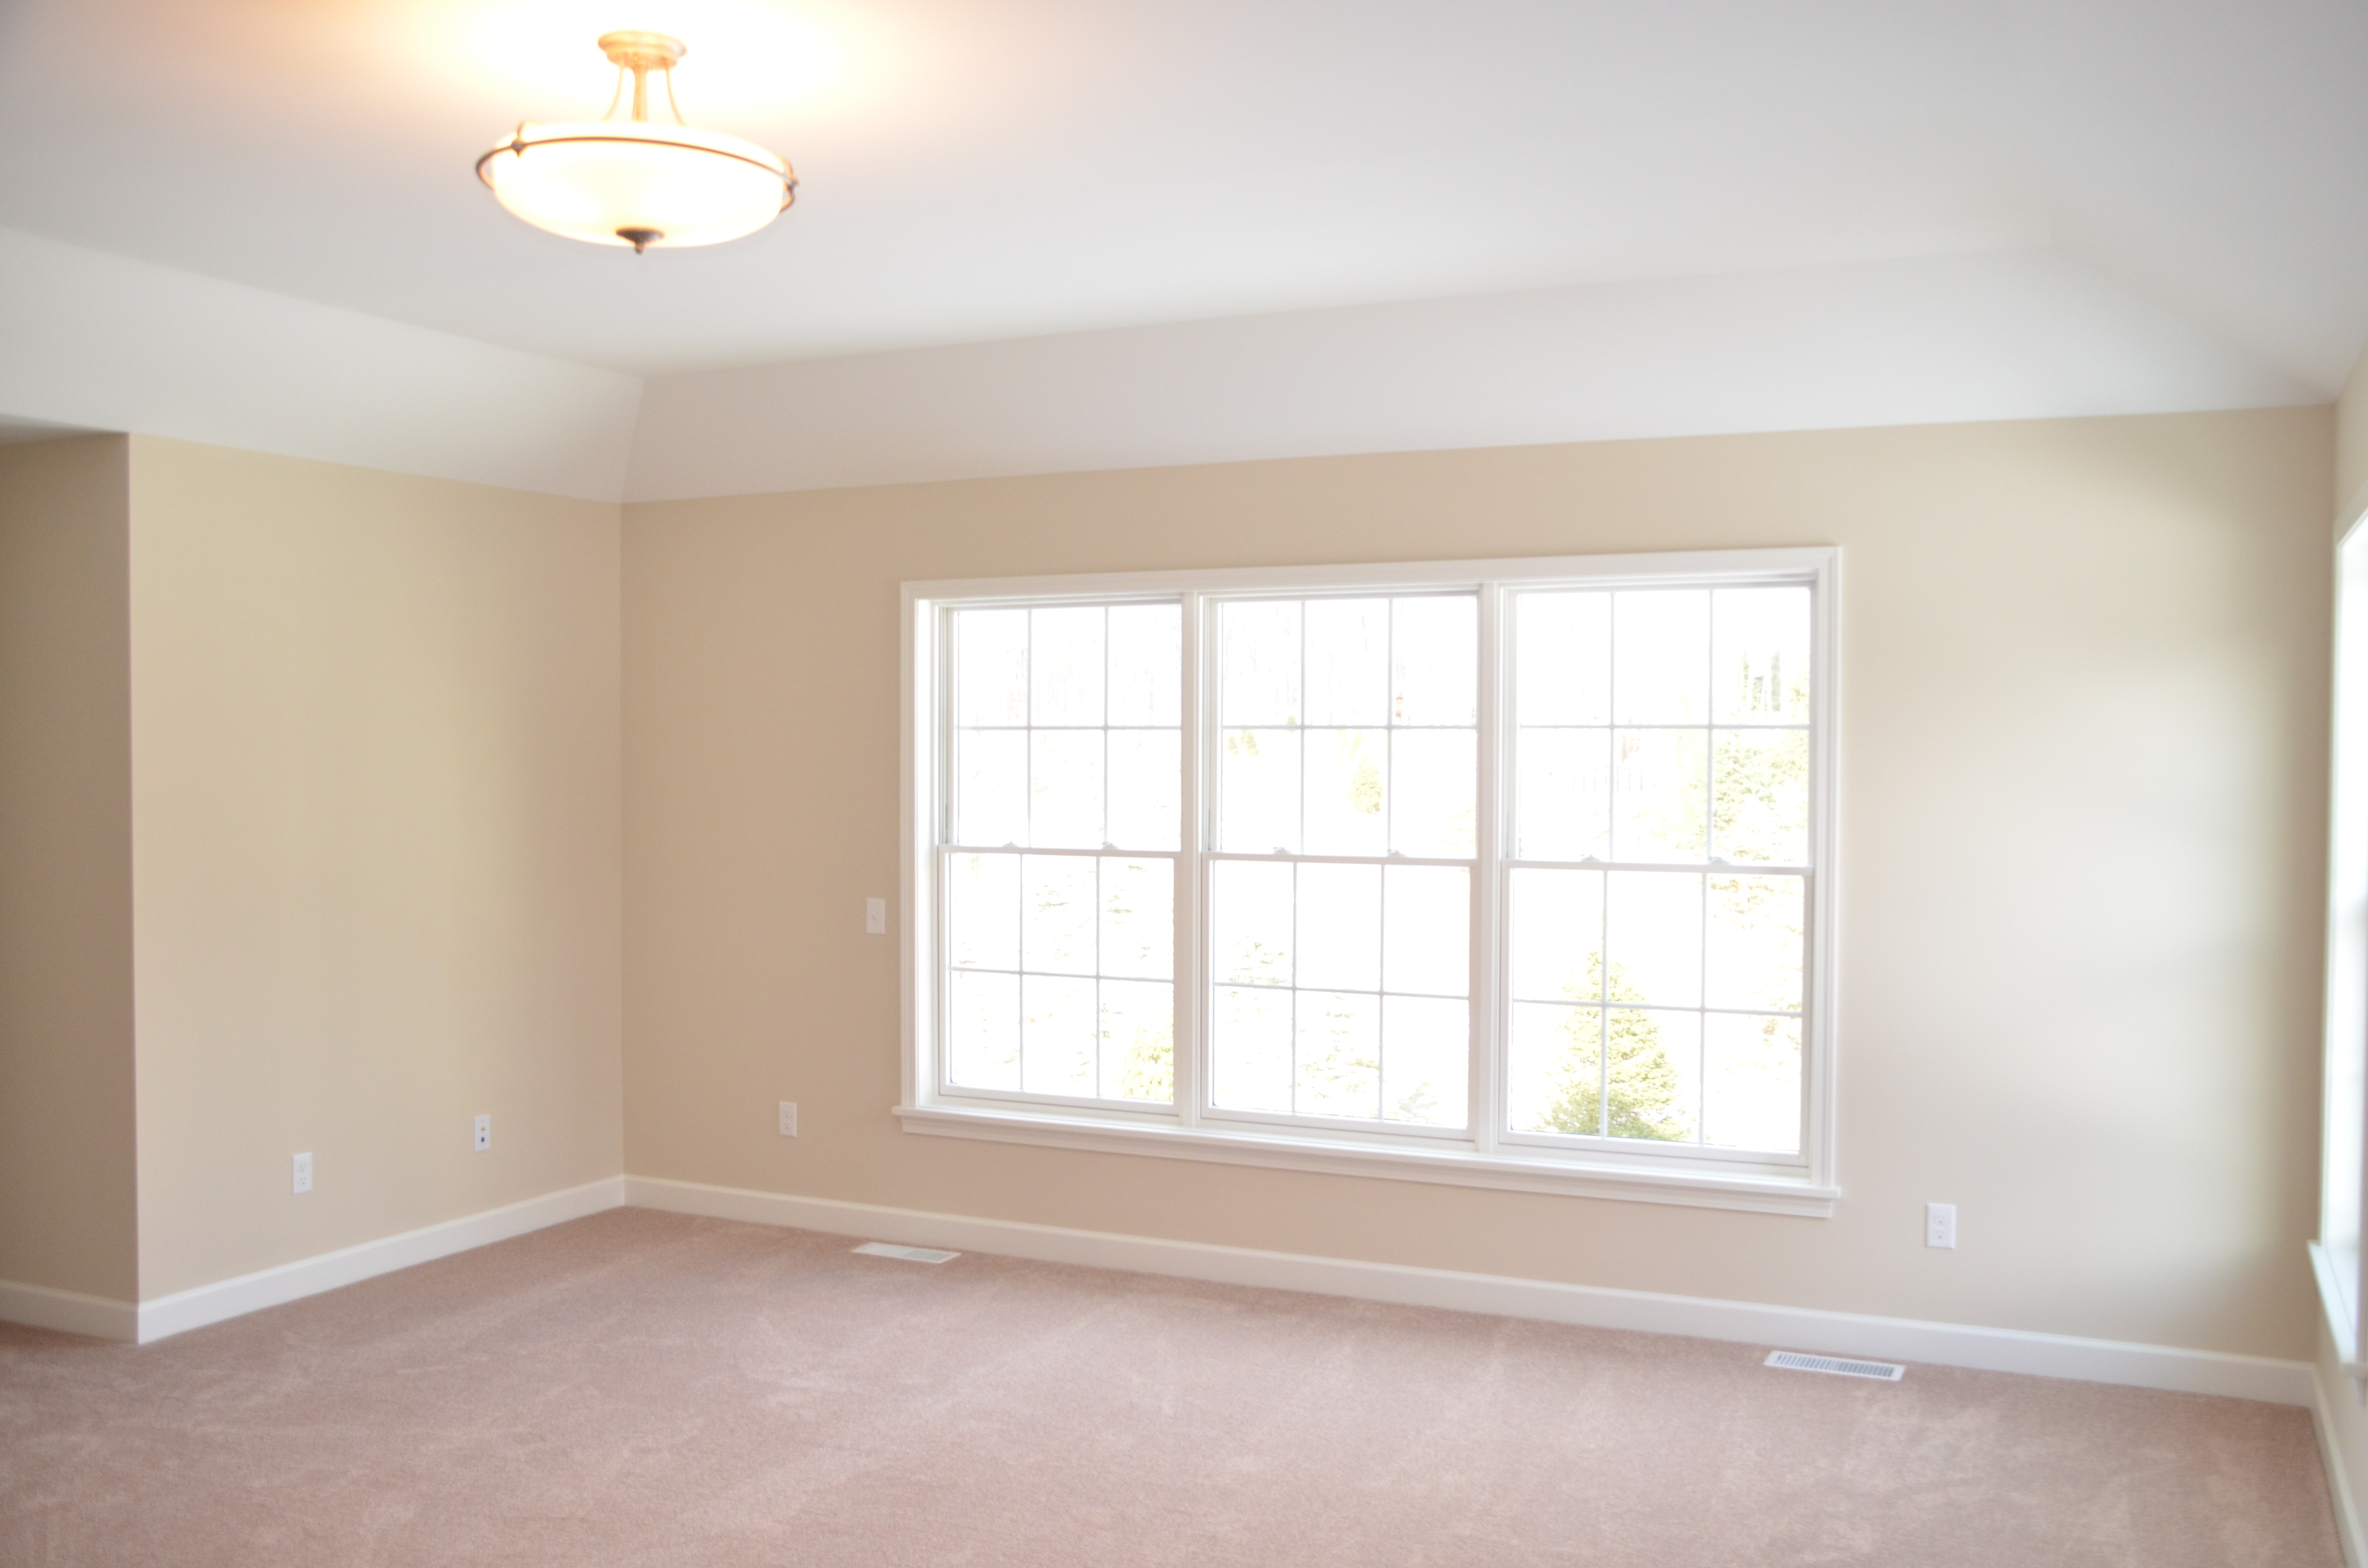 Pittsford Home Builder